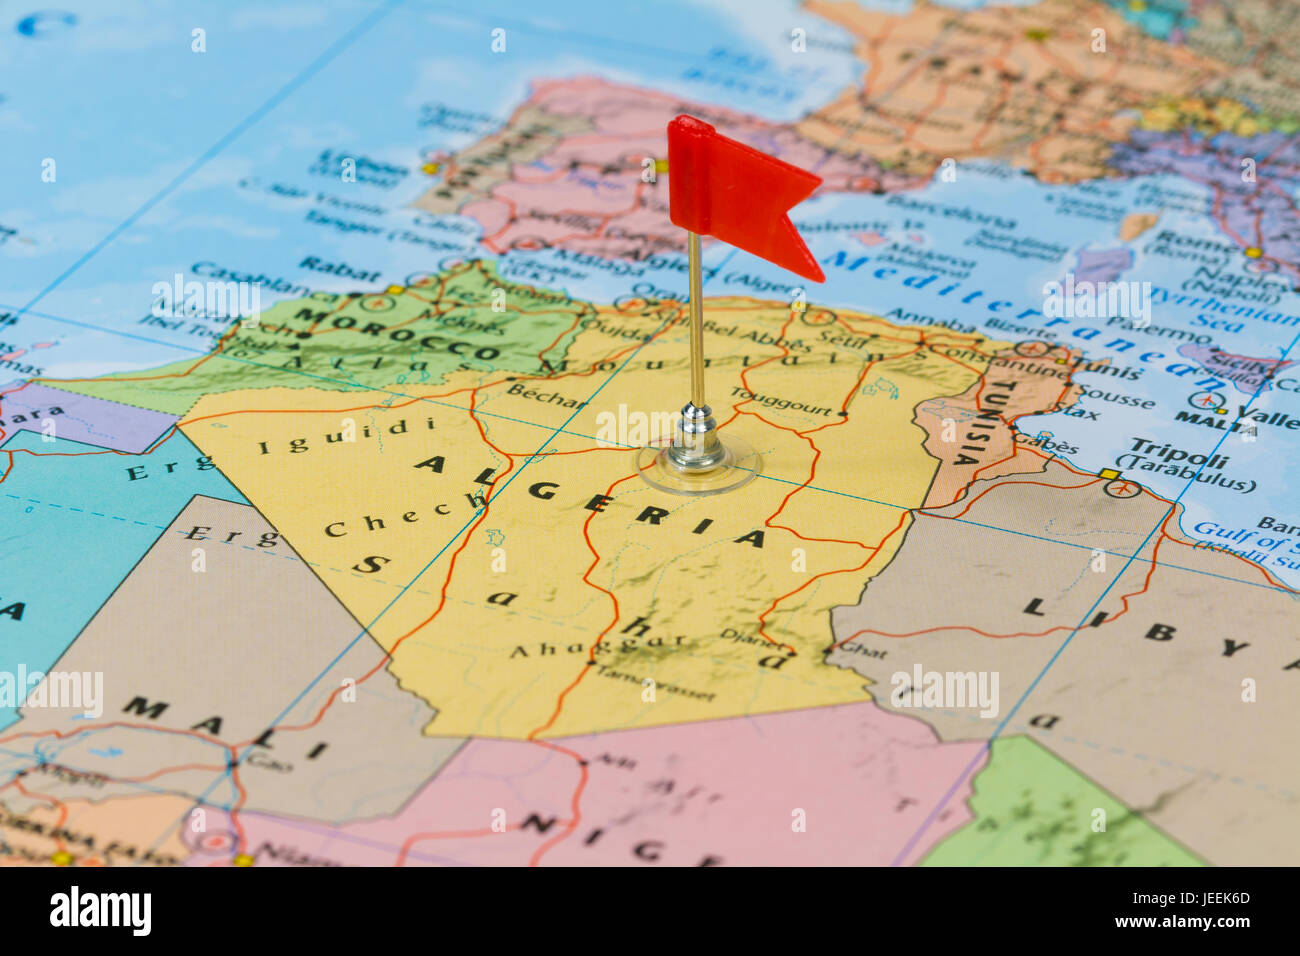 Photo of Algiers marked by red flag in holder. Country on African continent. - Stock Image